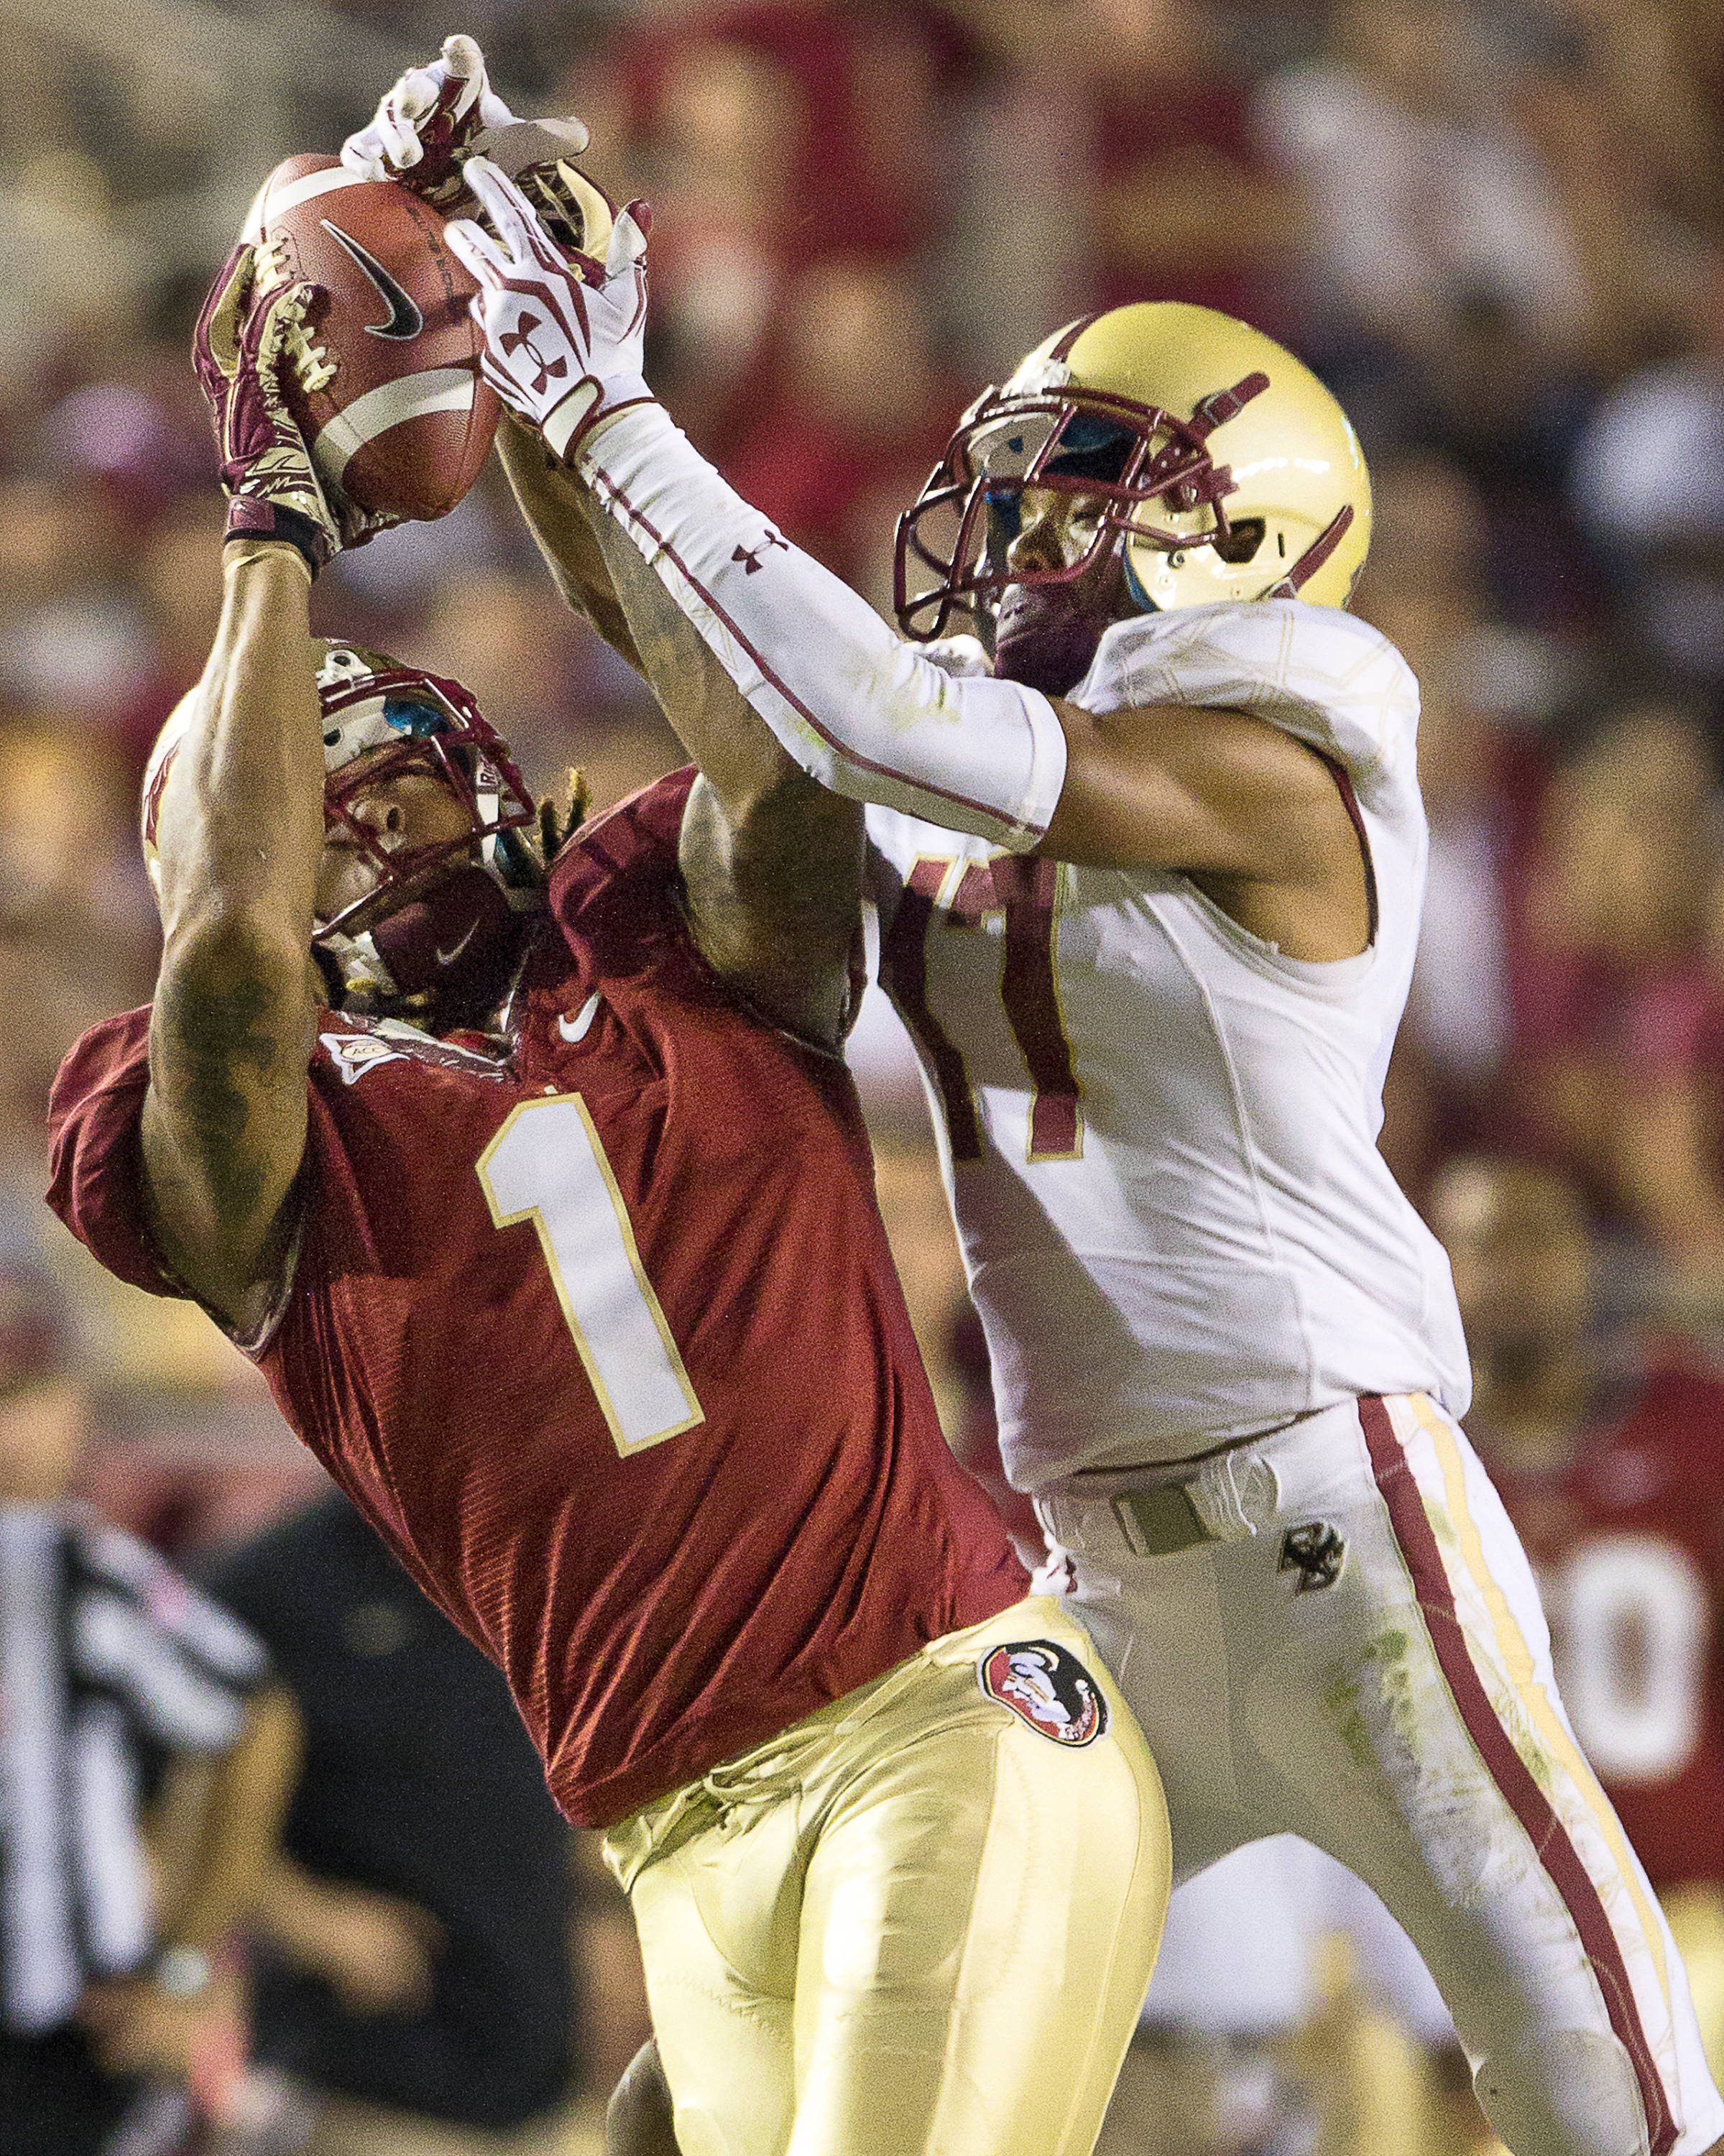 Kelvin Benjamin (1) catches a pass from Clint Trickett during the FSU vs Boston College football game on October 13, 2012 in Tallahassee, Fla.